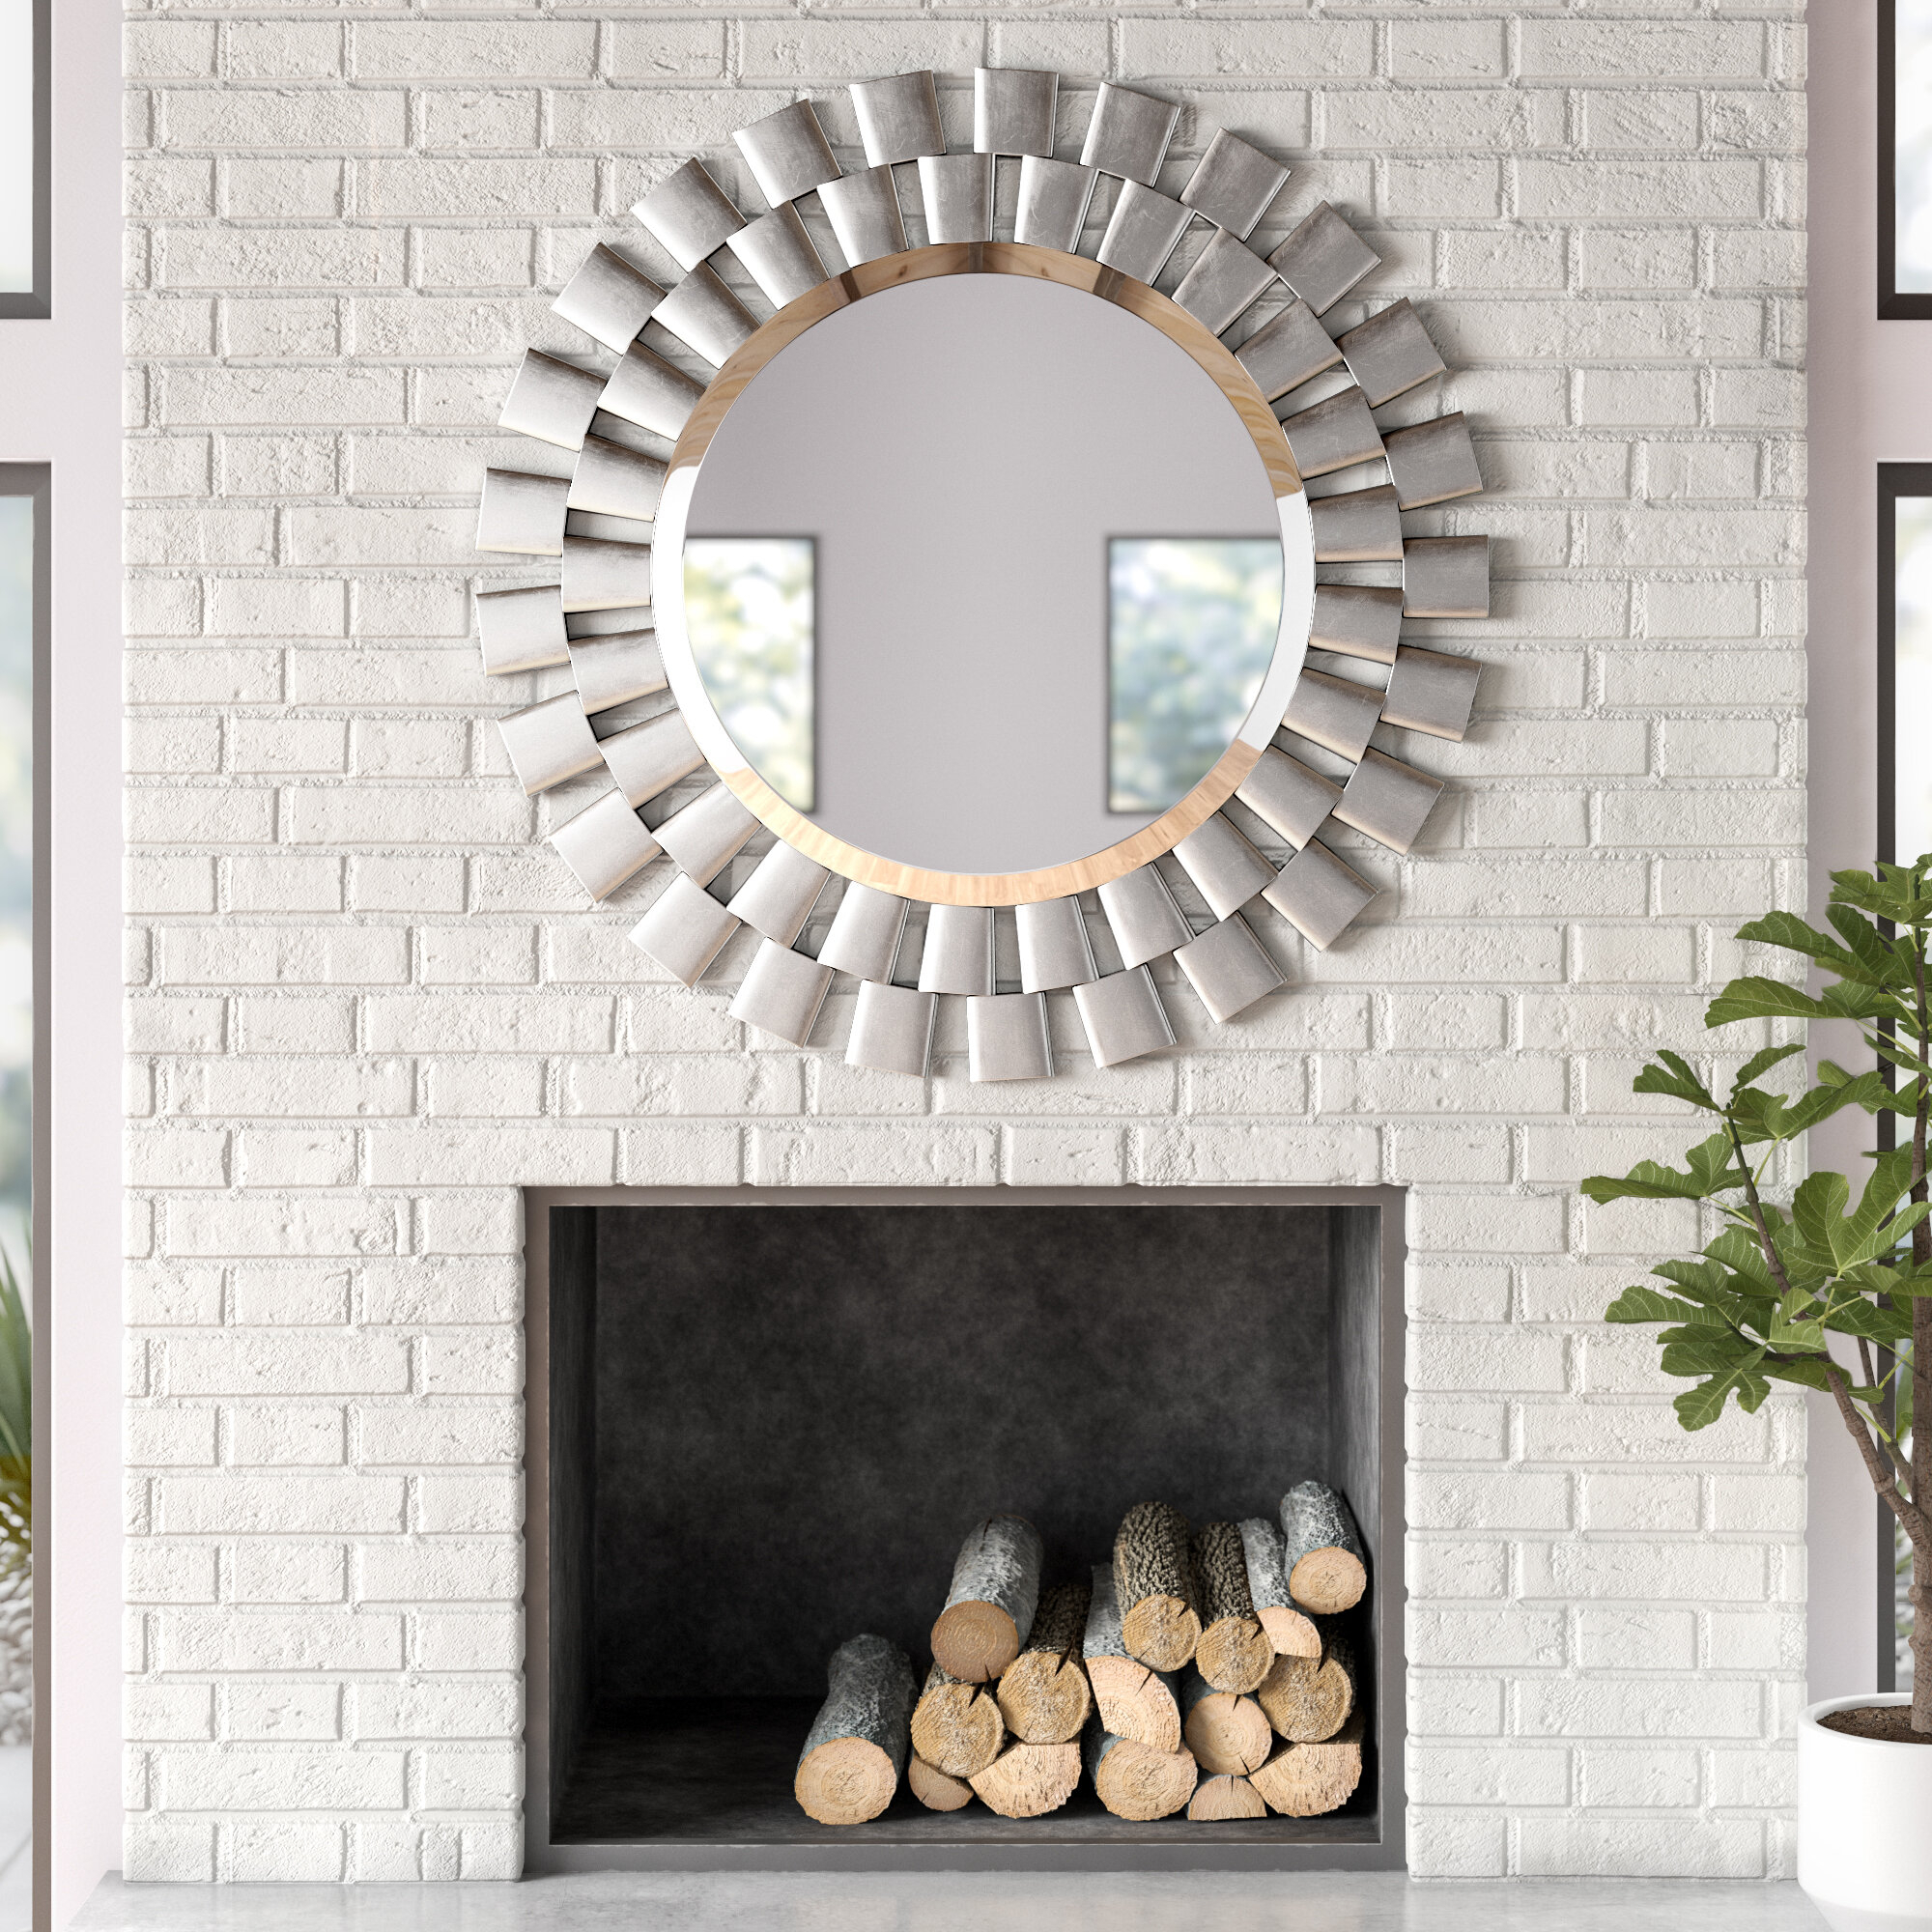 Glam Beveled Accent Mirror with Josephson Starburst Glam Beveled Accent Wall Mirrors (Image 7 of 22)